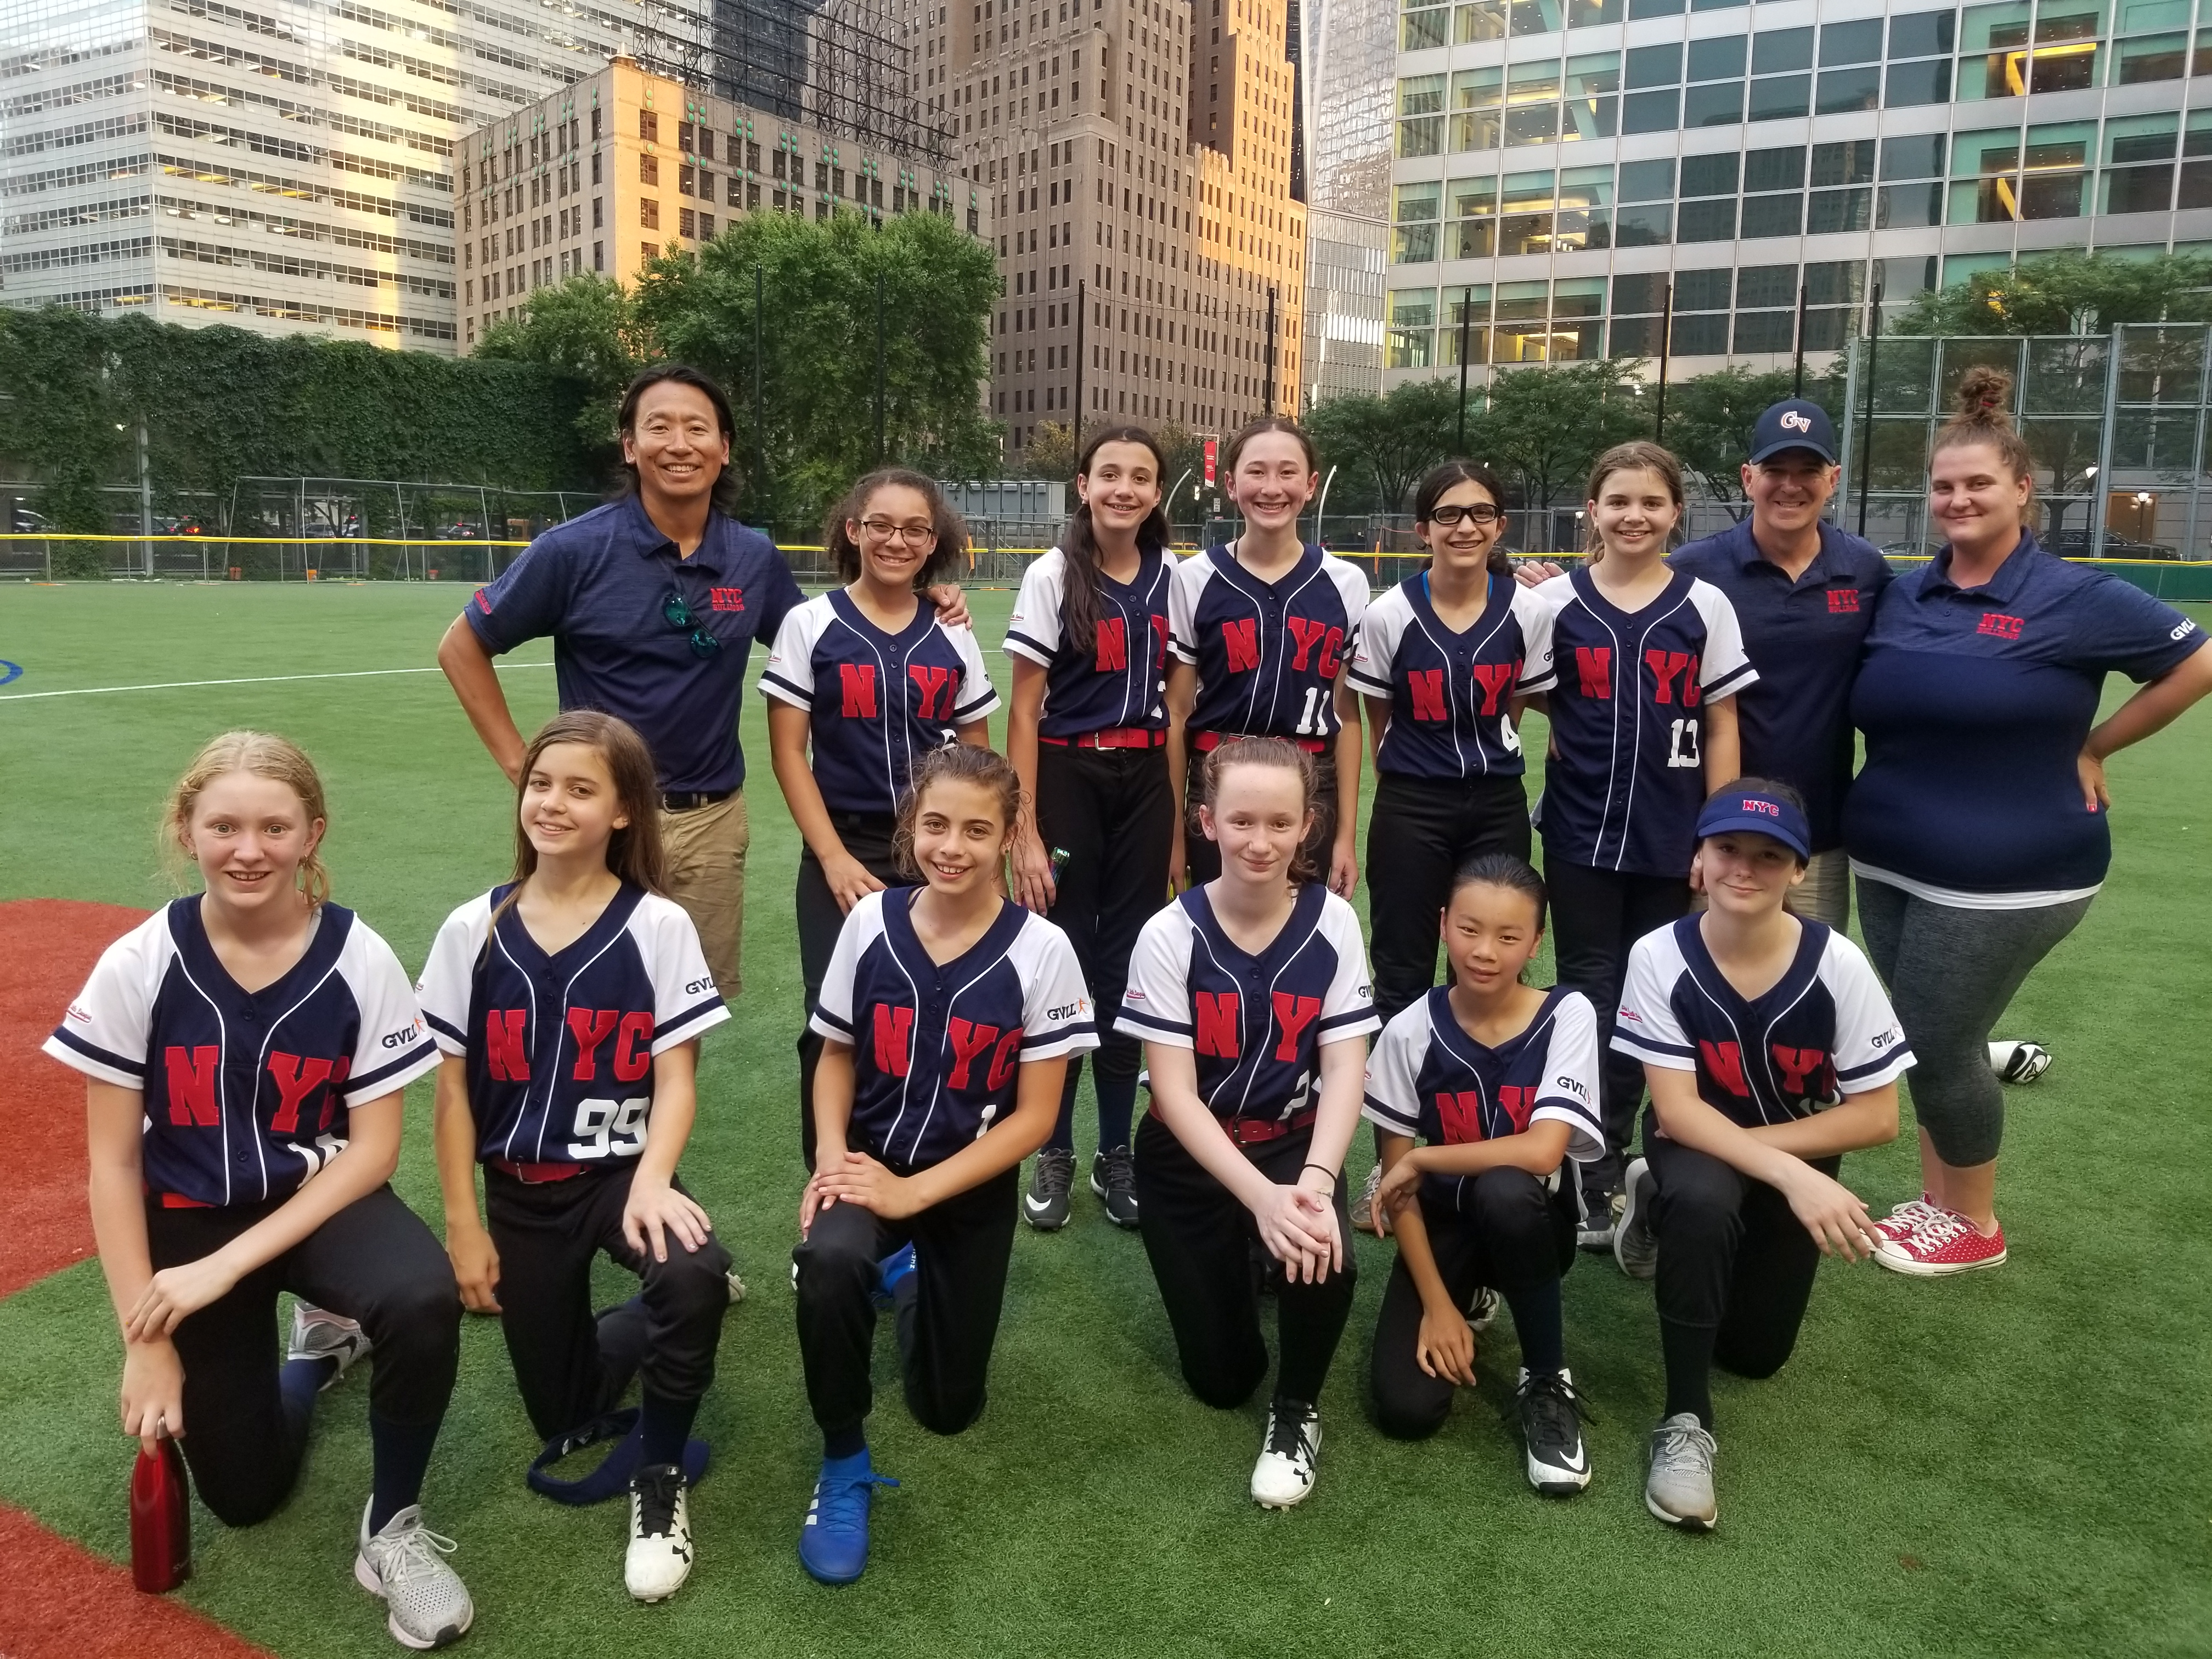 12u Girls Softball Combined West Side/Greenwich Village team Wins District 23 Championship!